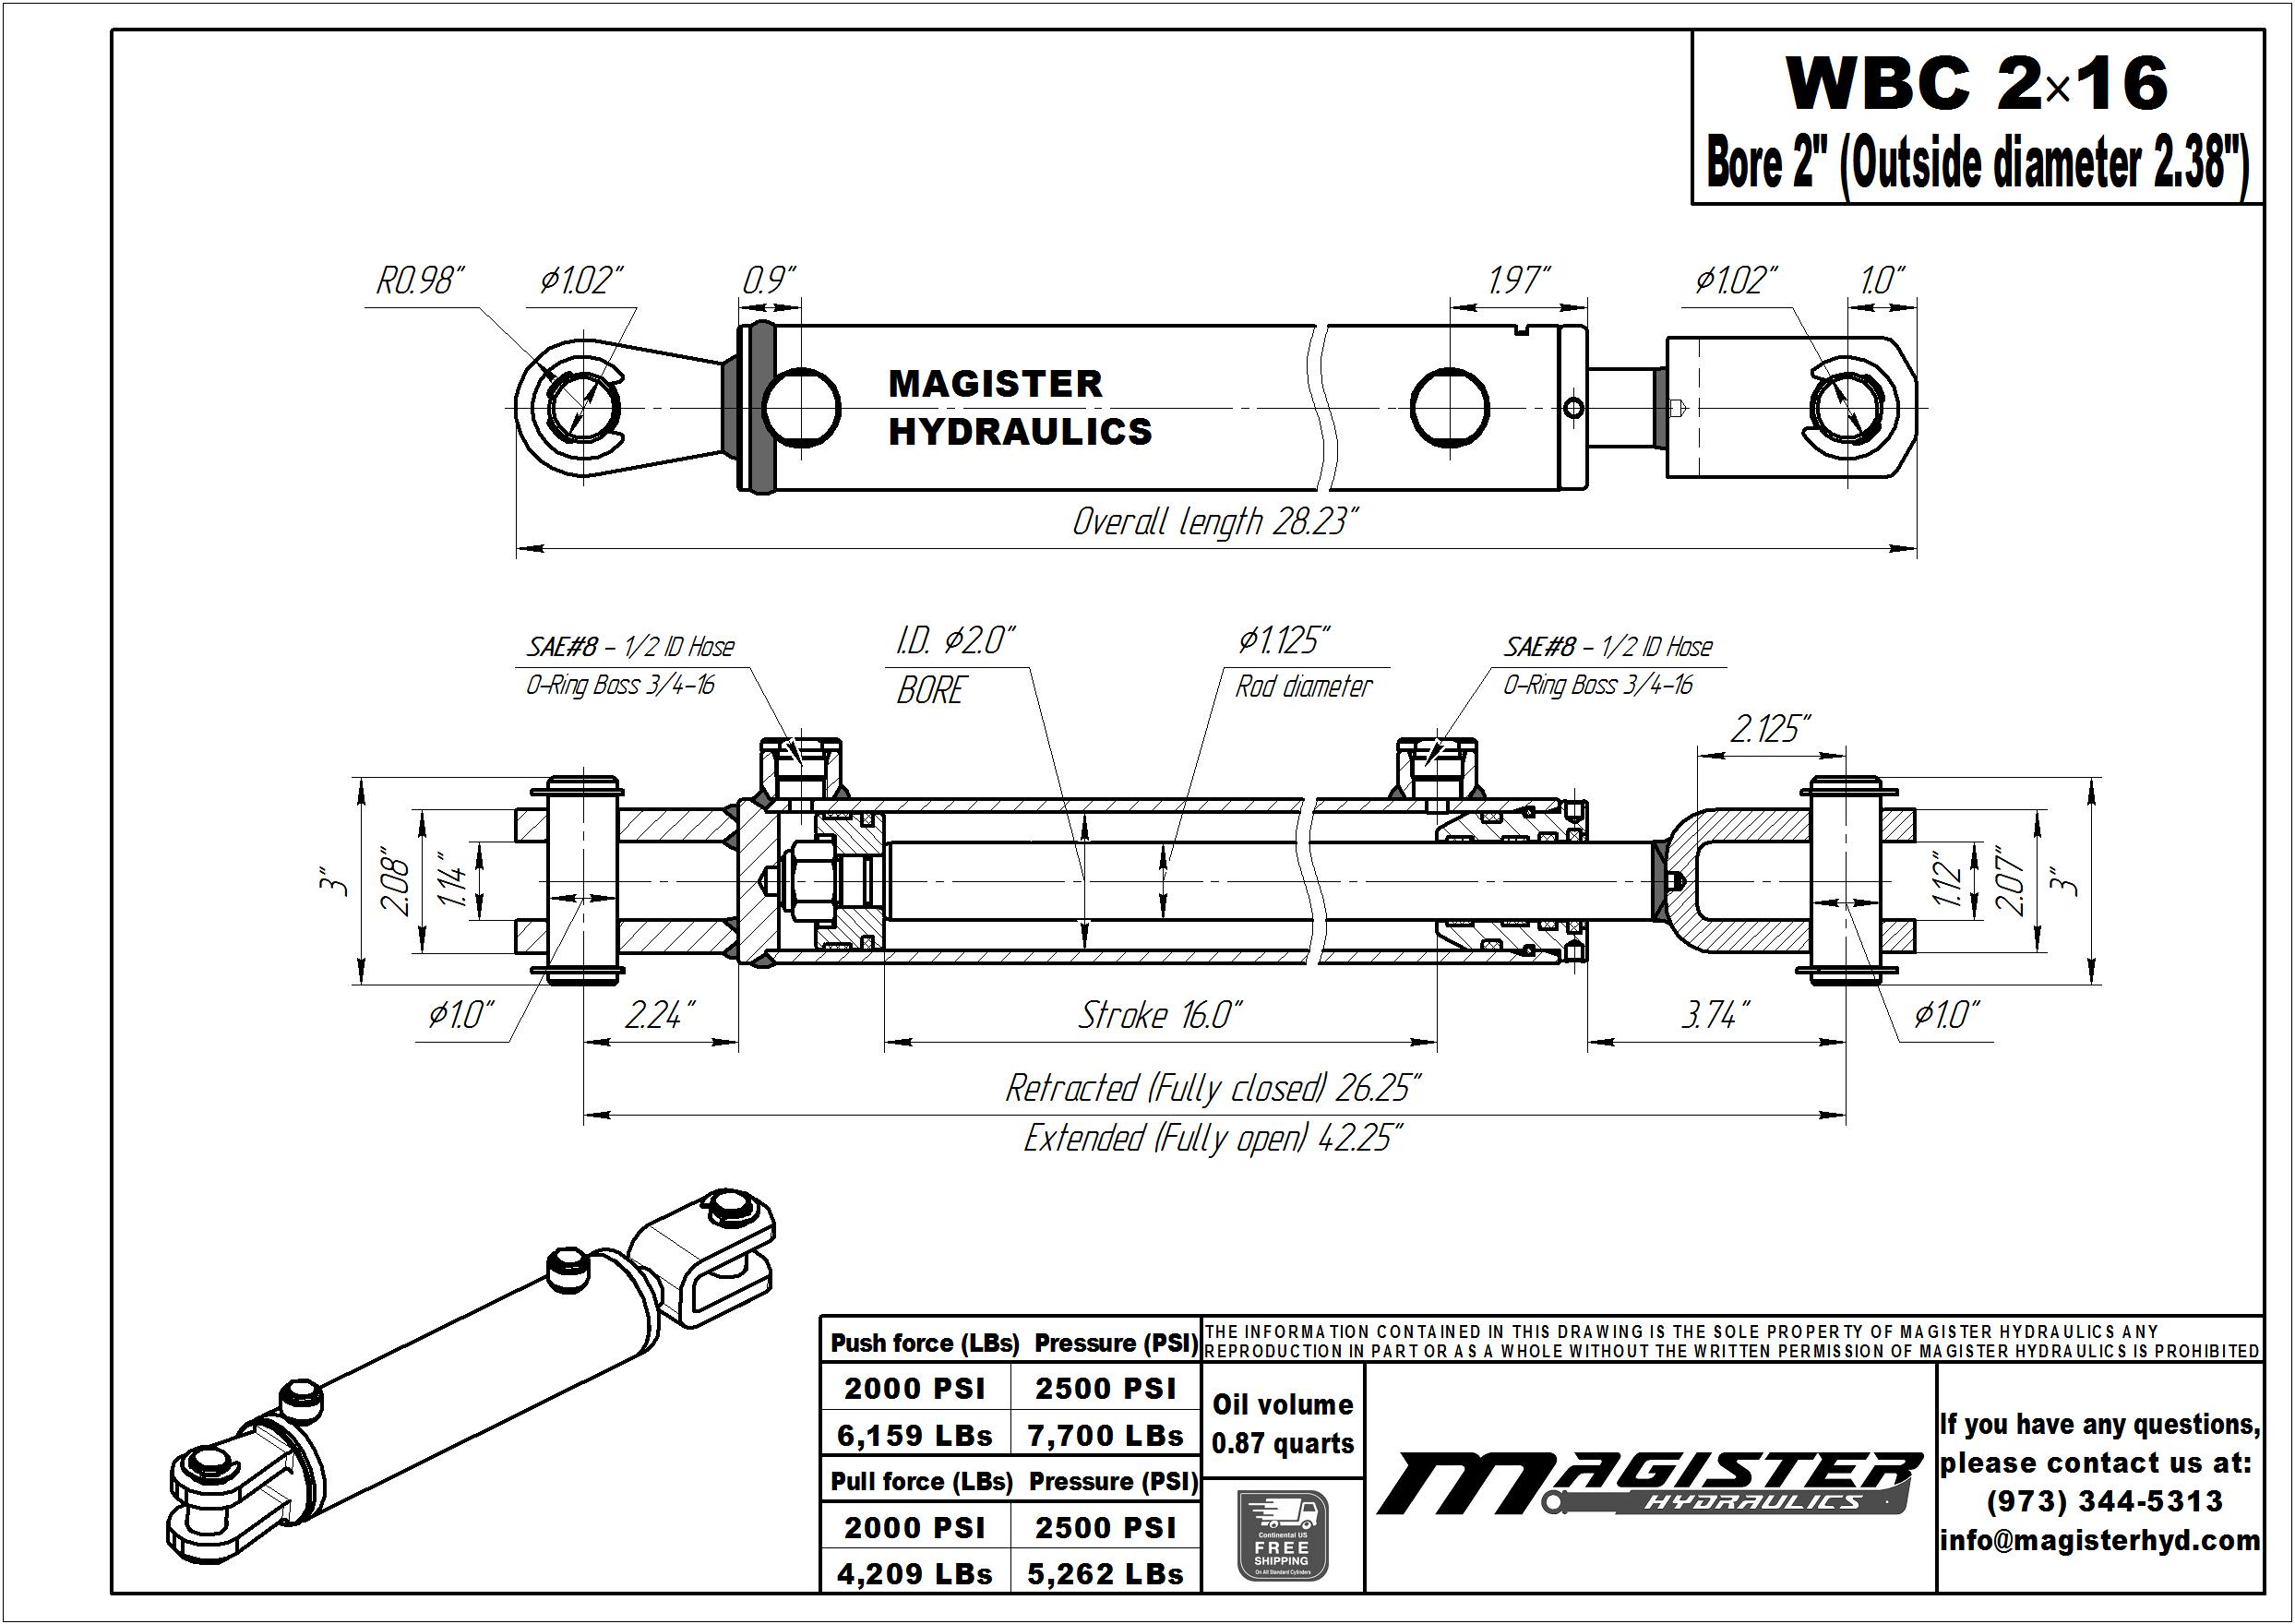 2 bore x 16 stroke hydraulic cylinder, ag clevis double acting cylinder | Magister Hydraulics